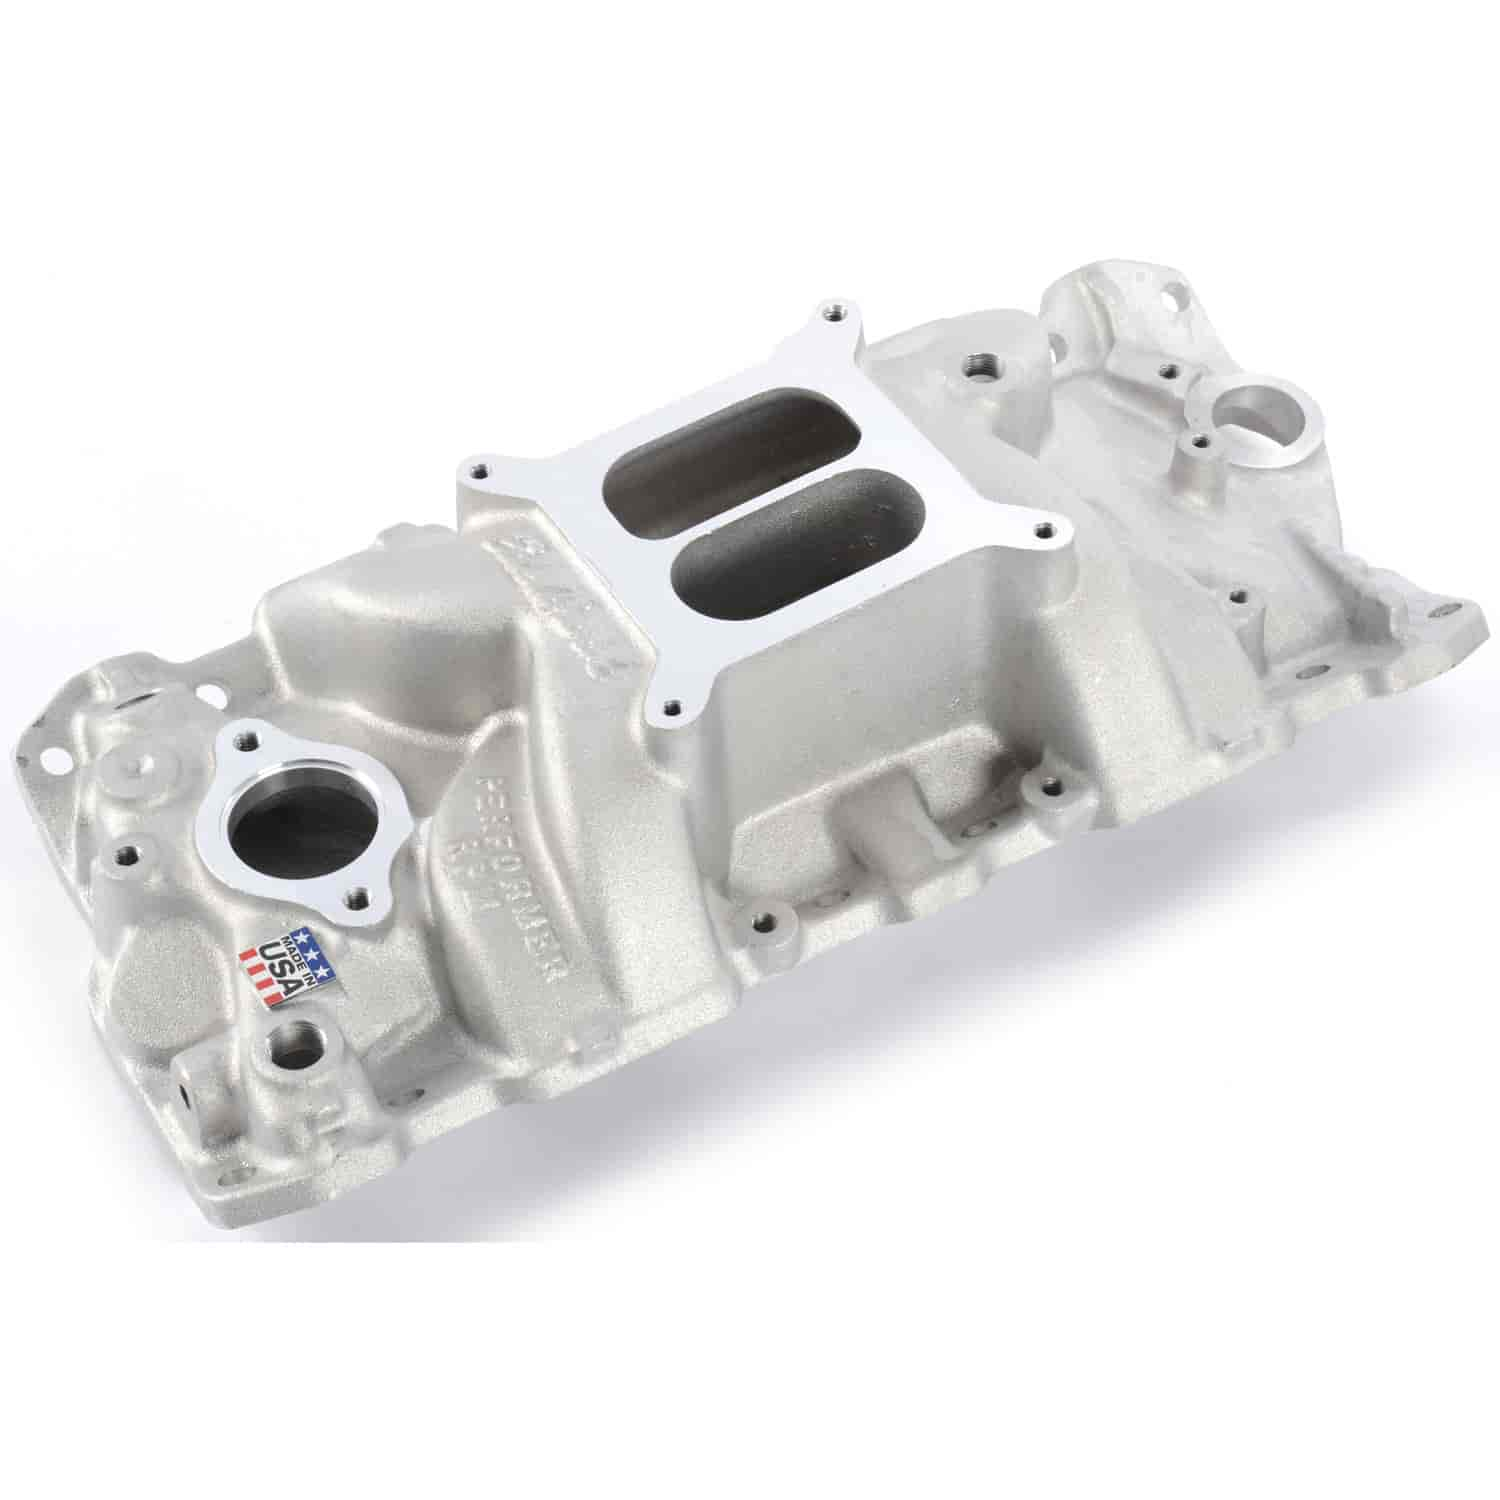 Edelbrock 7101 - Edelbrock Performer RPM Intake Manifolds & Kits for Chevrolet